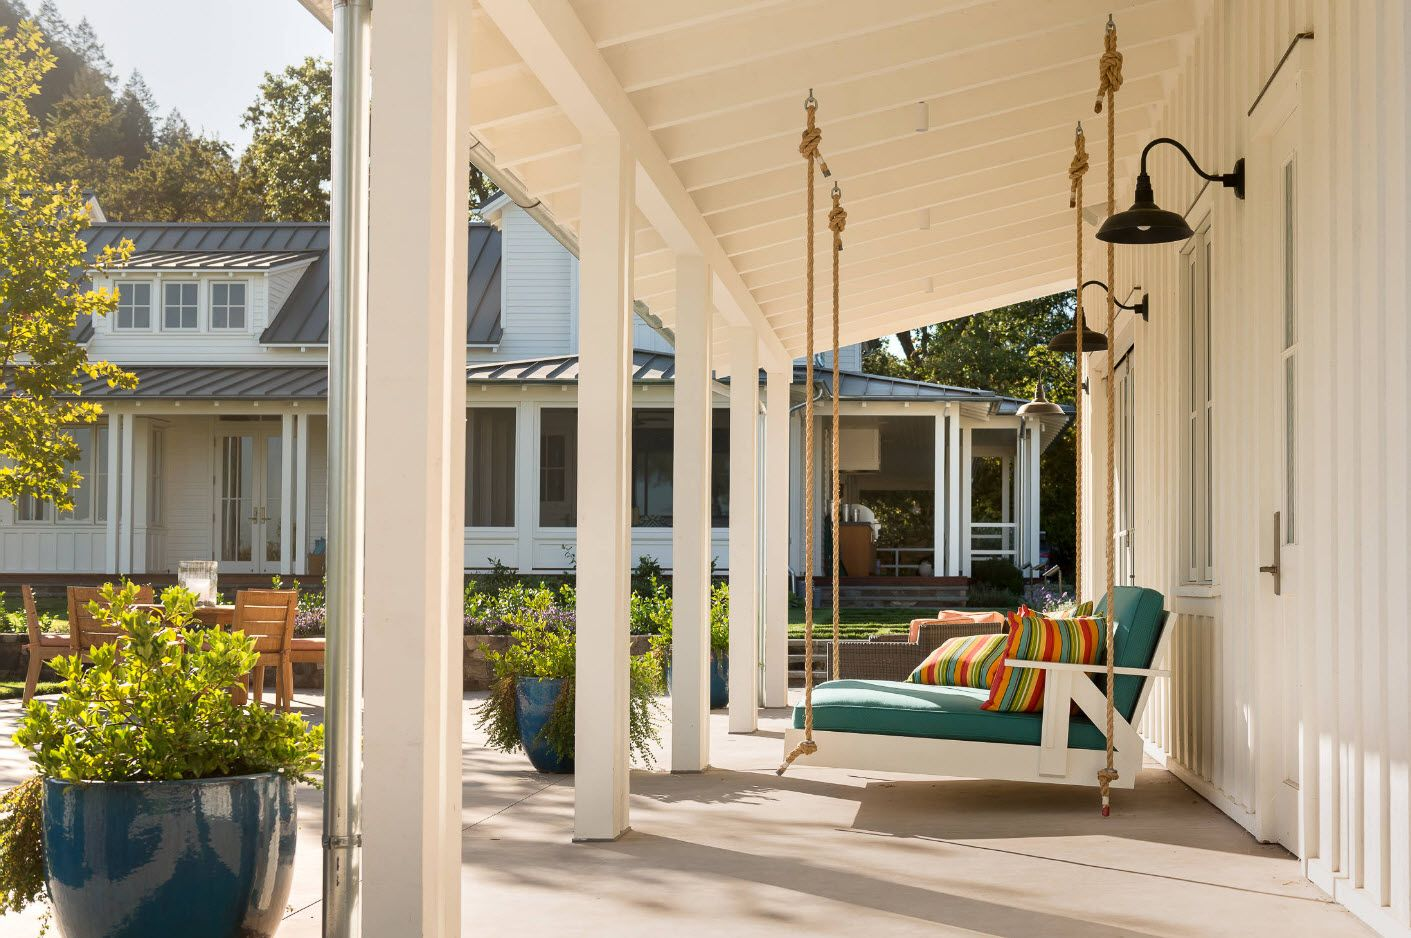 Nice white wooden trimmed porch with rope swing bed to nap at the nature